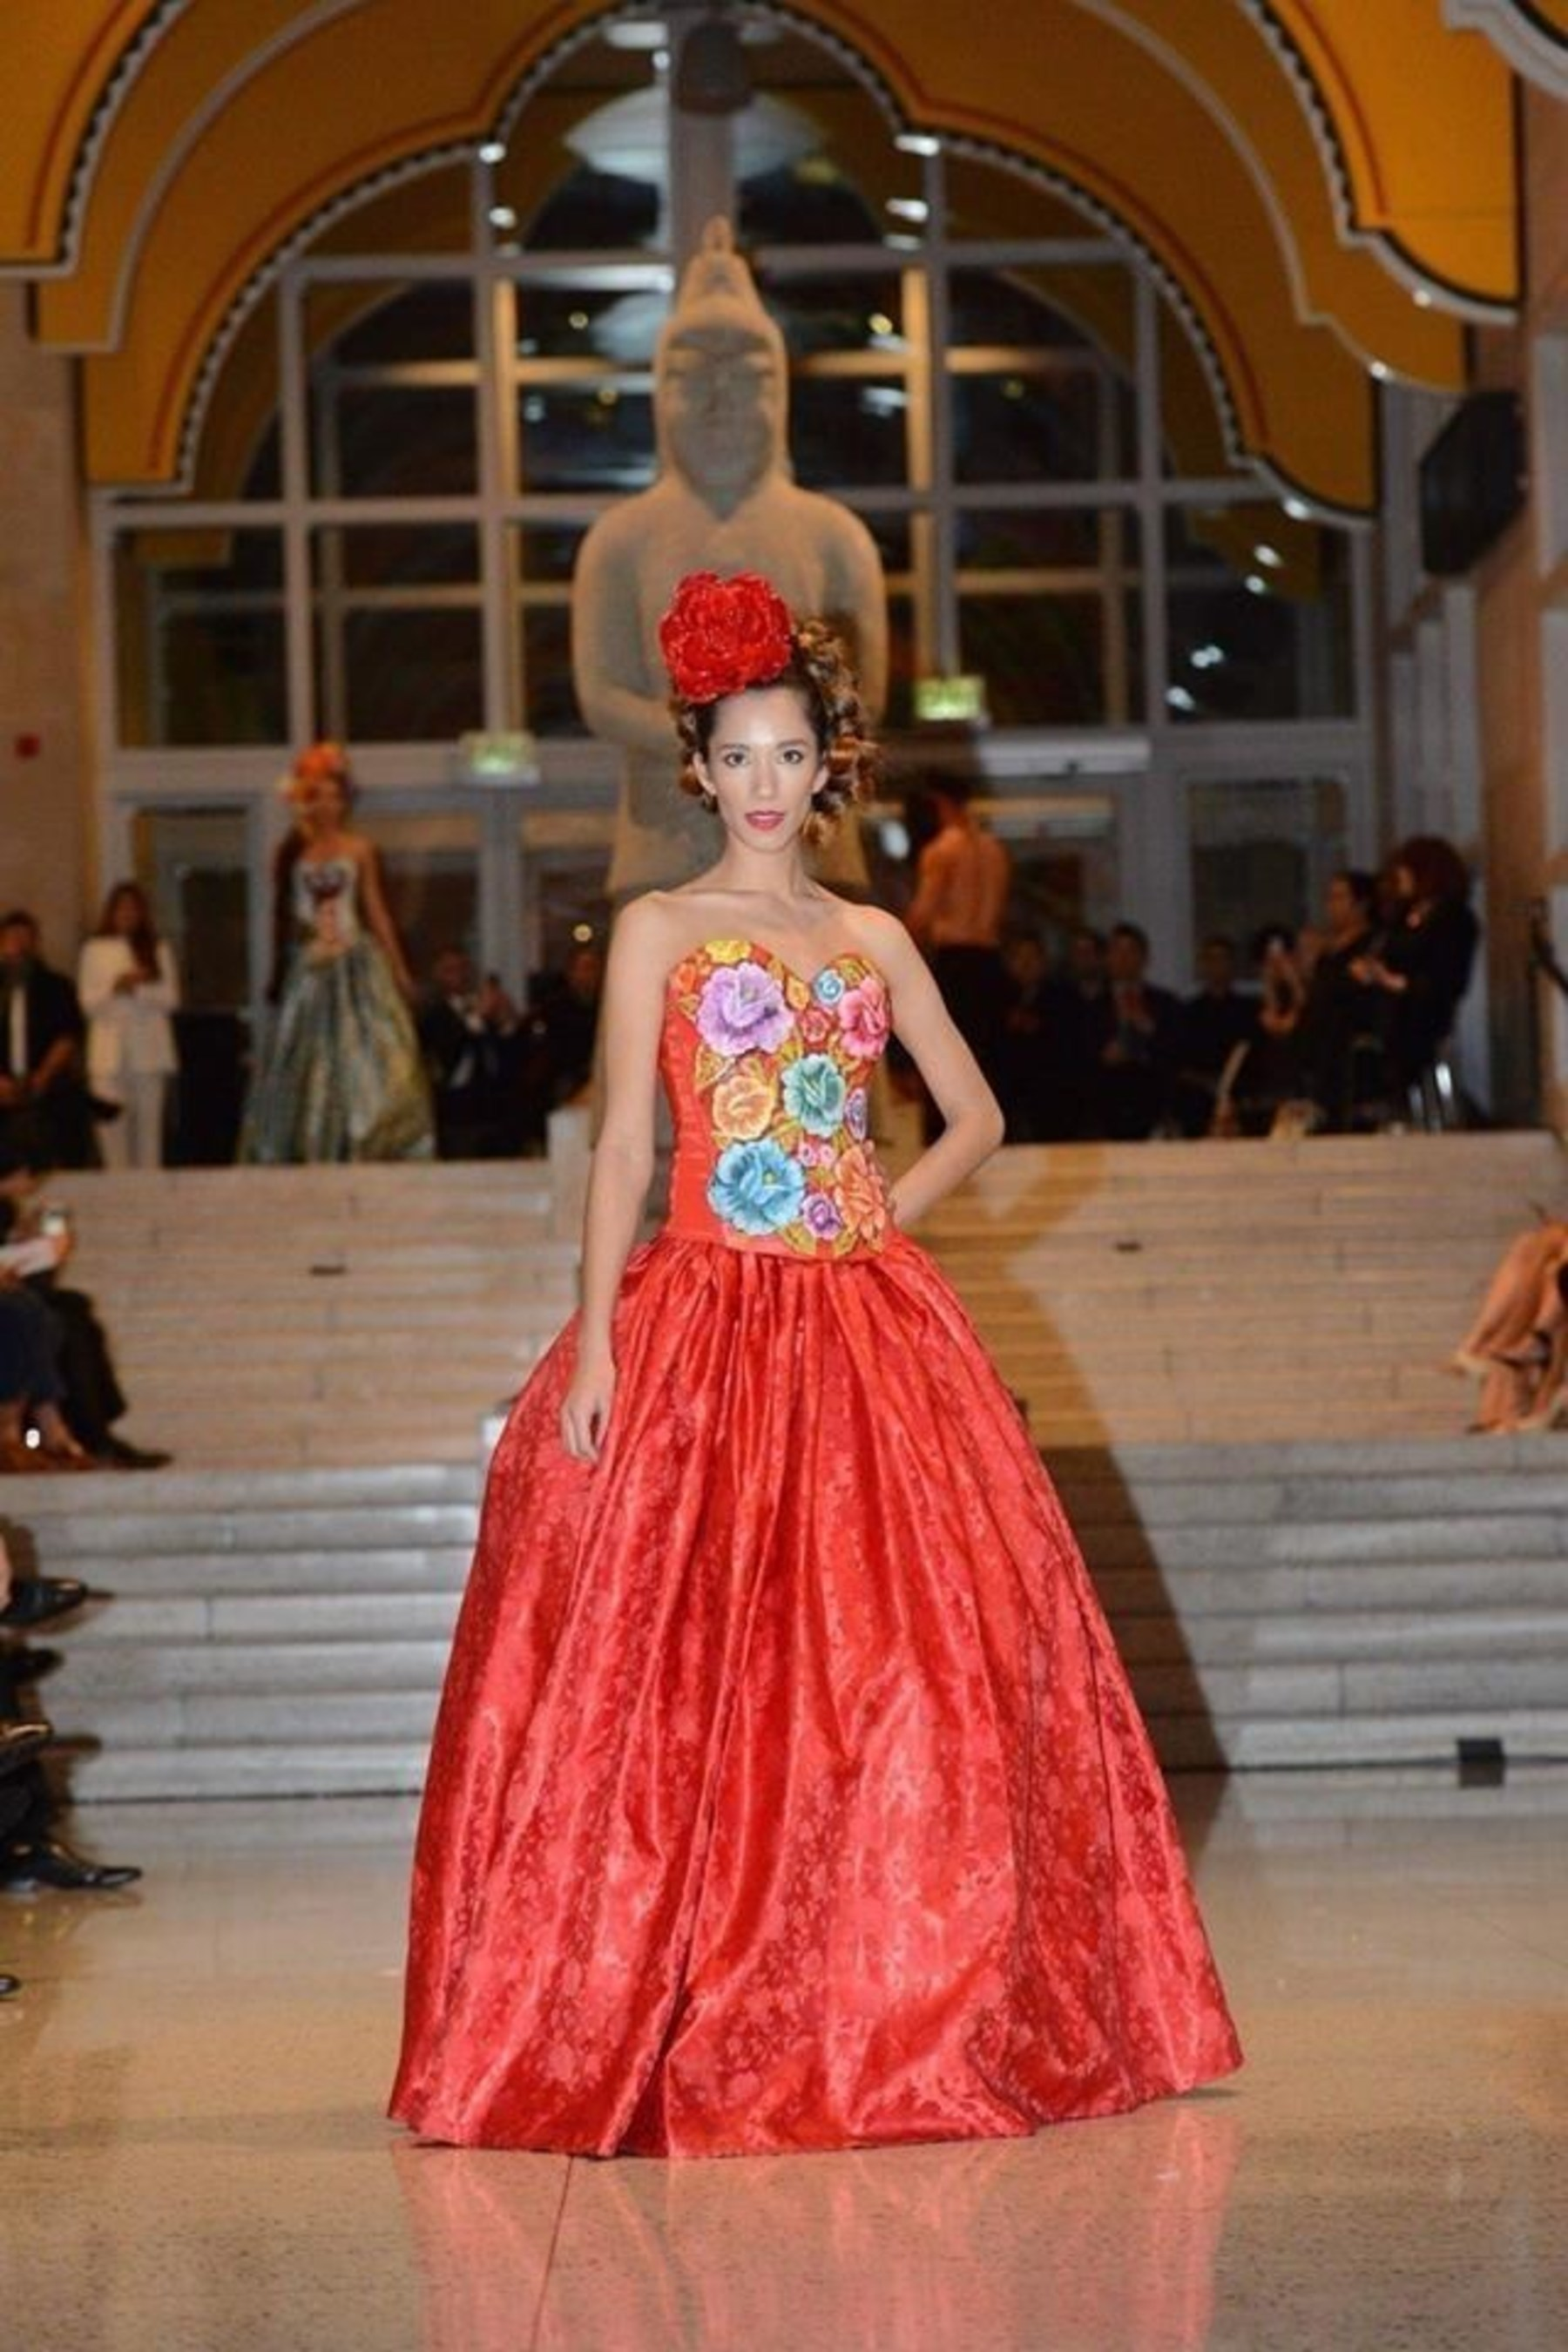 Metropolitan Fashion Week's Closing Gala Features Celebrity Costume, Fashion Designers and a Tribute to Breast Cancer